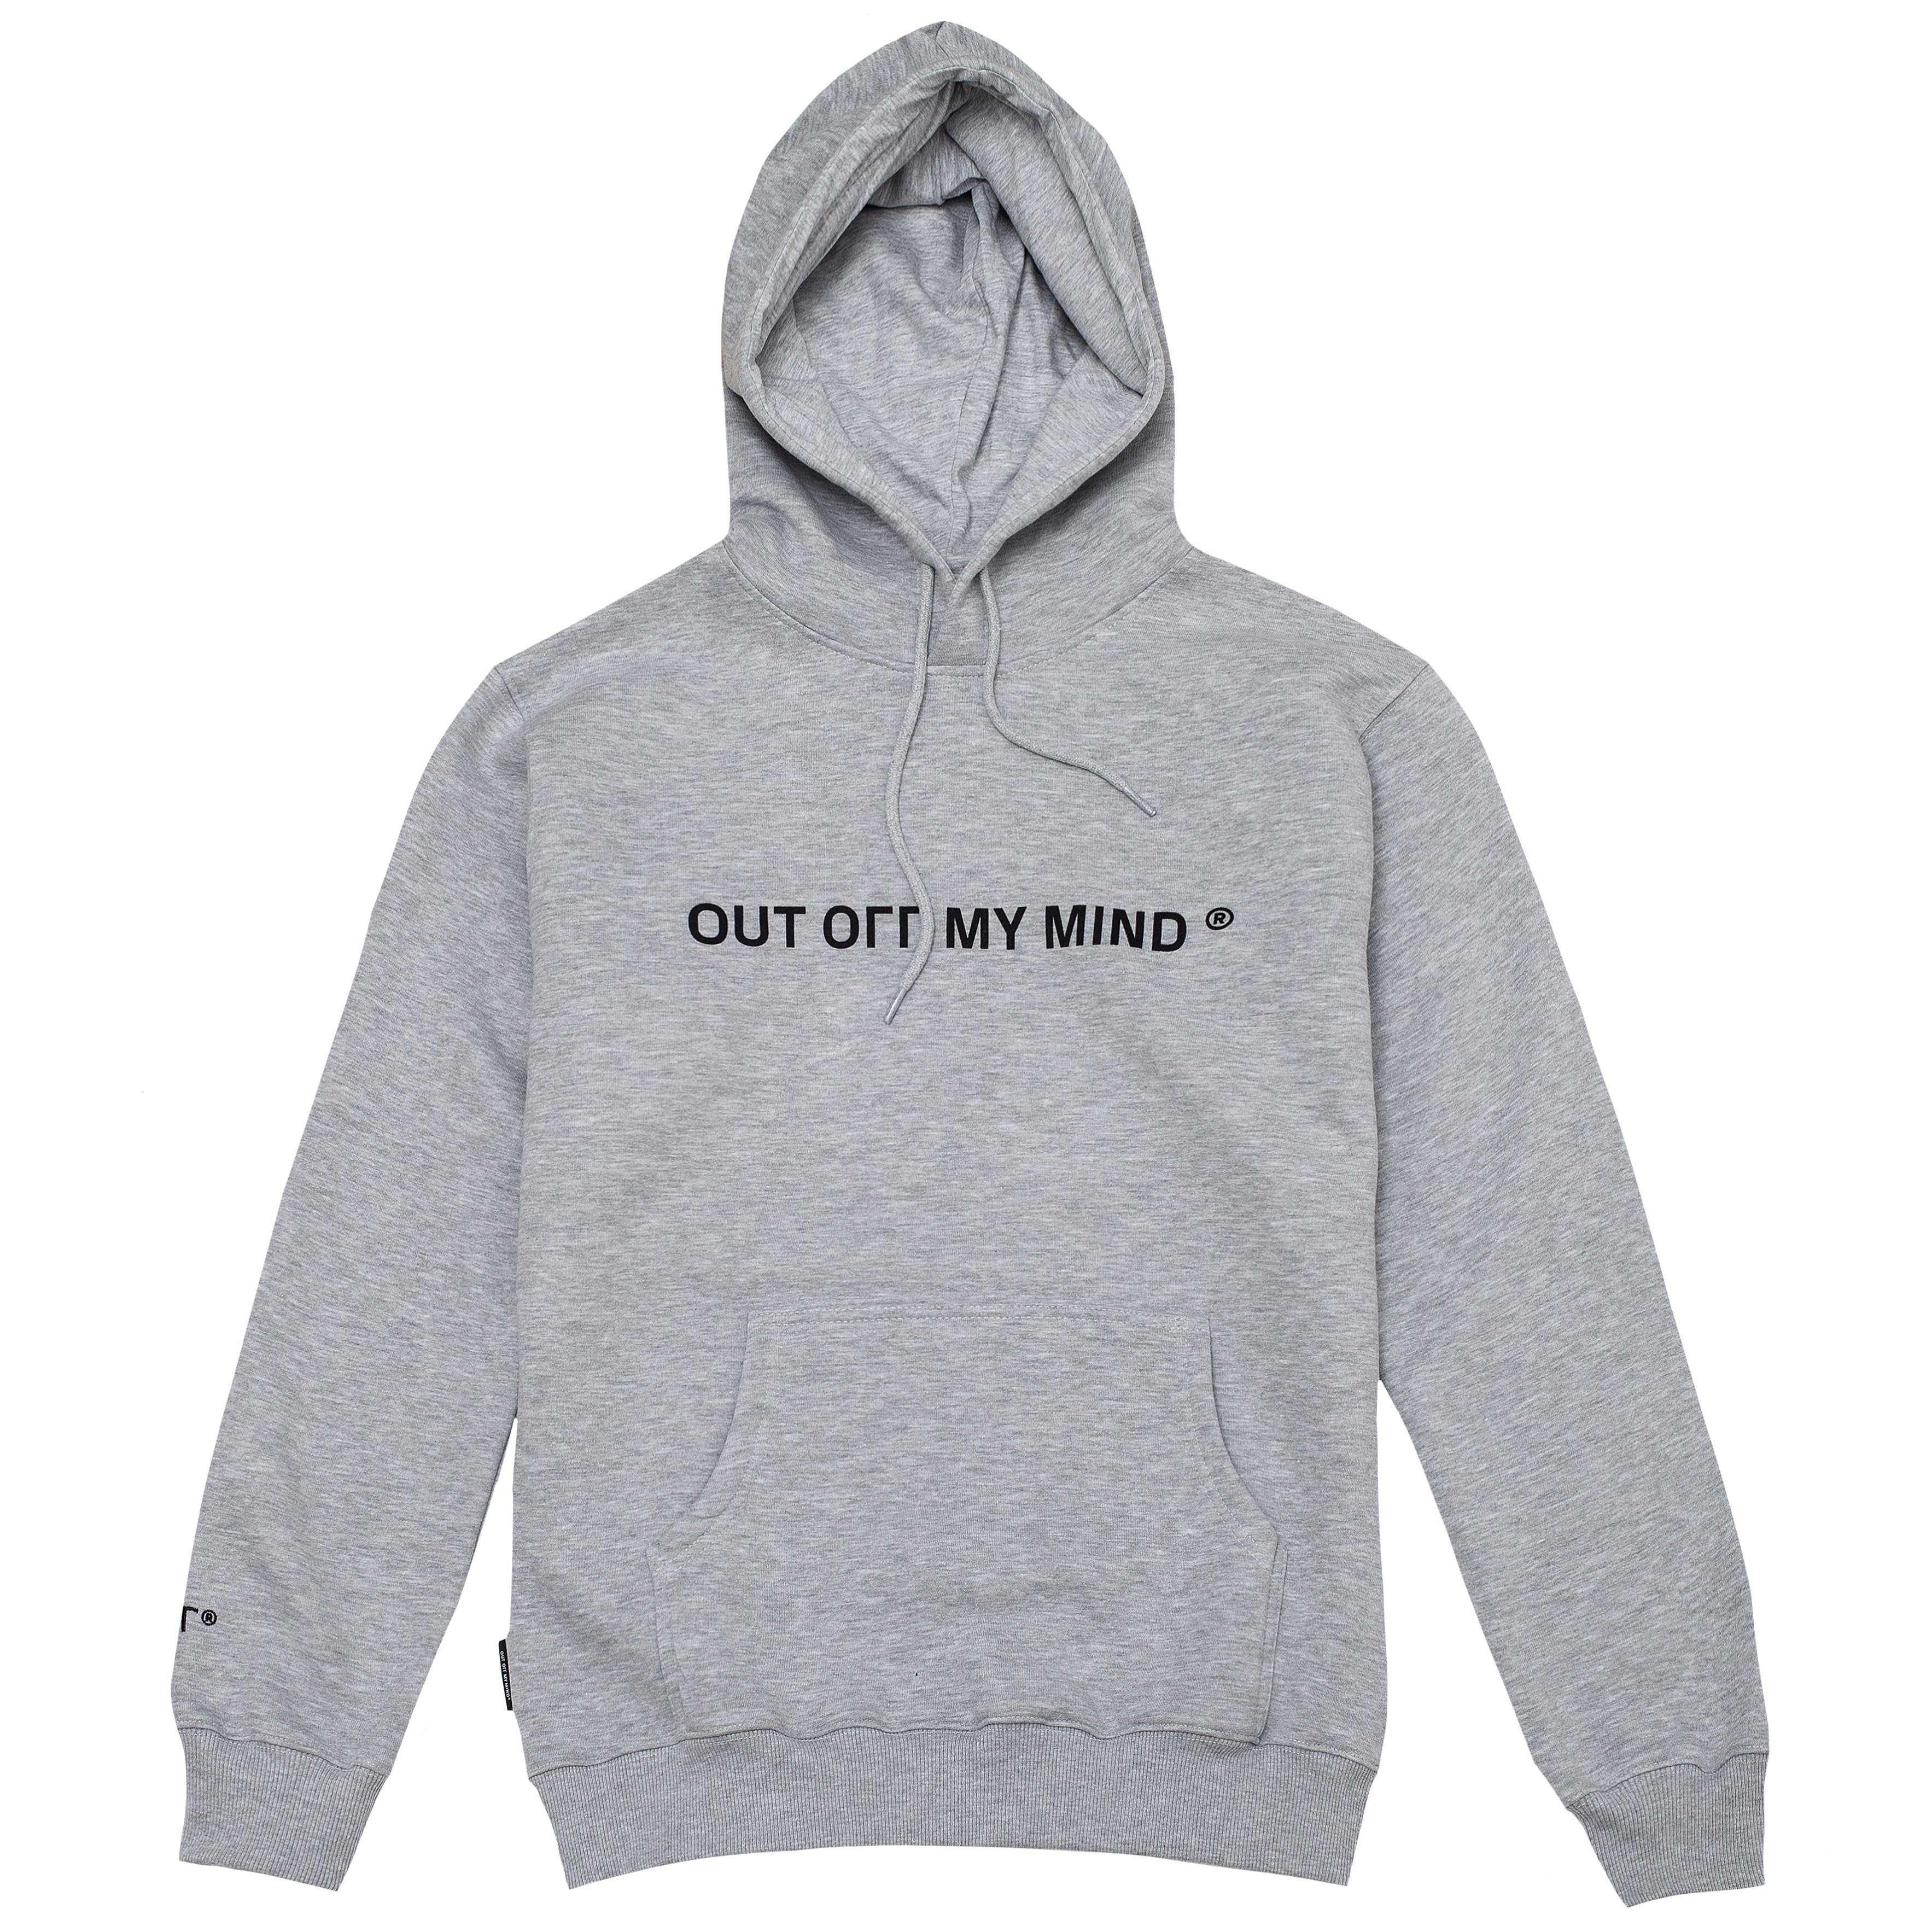 FLAG HOODIE GREY - outoffmymind